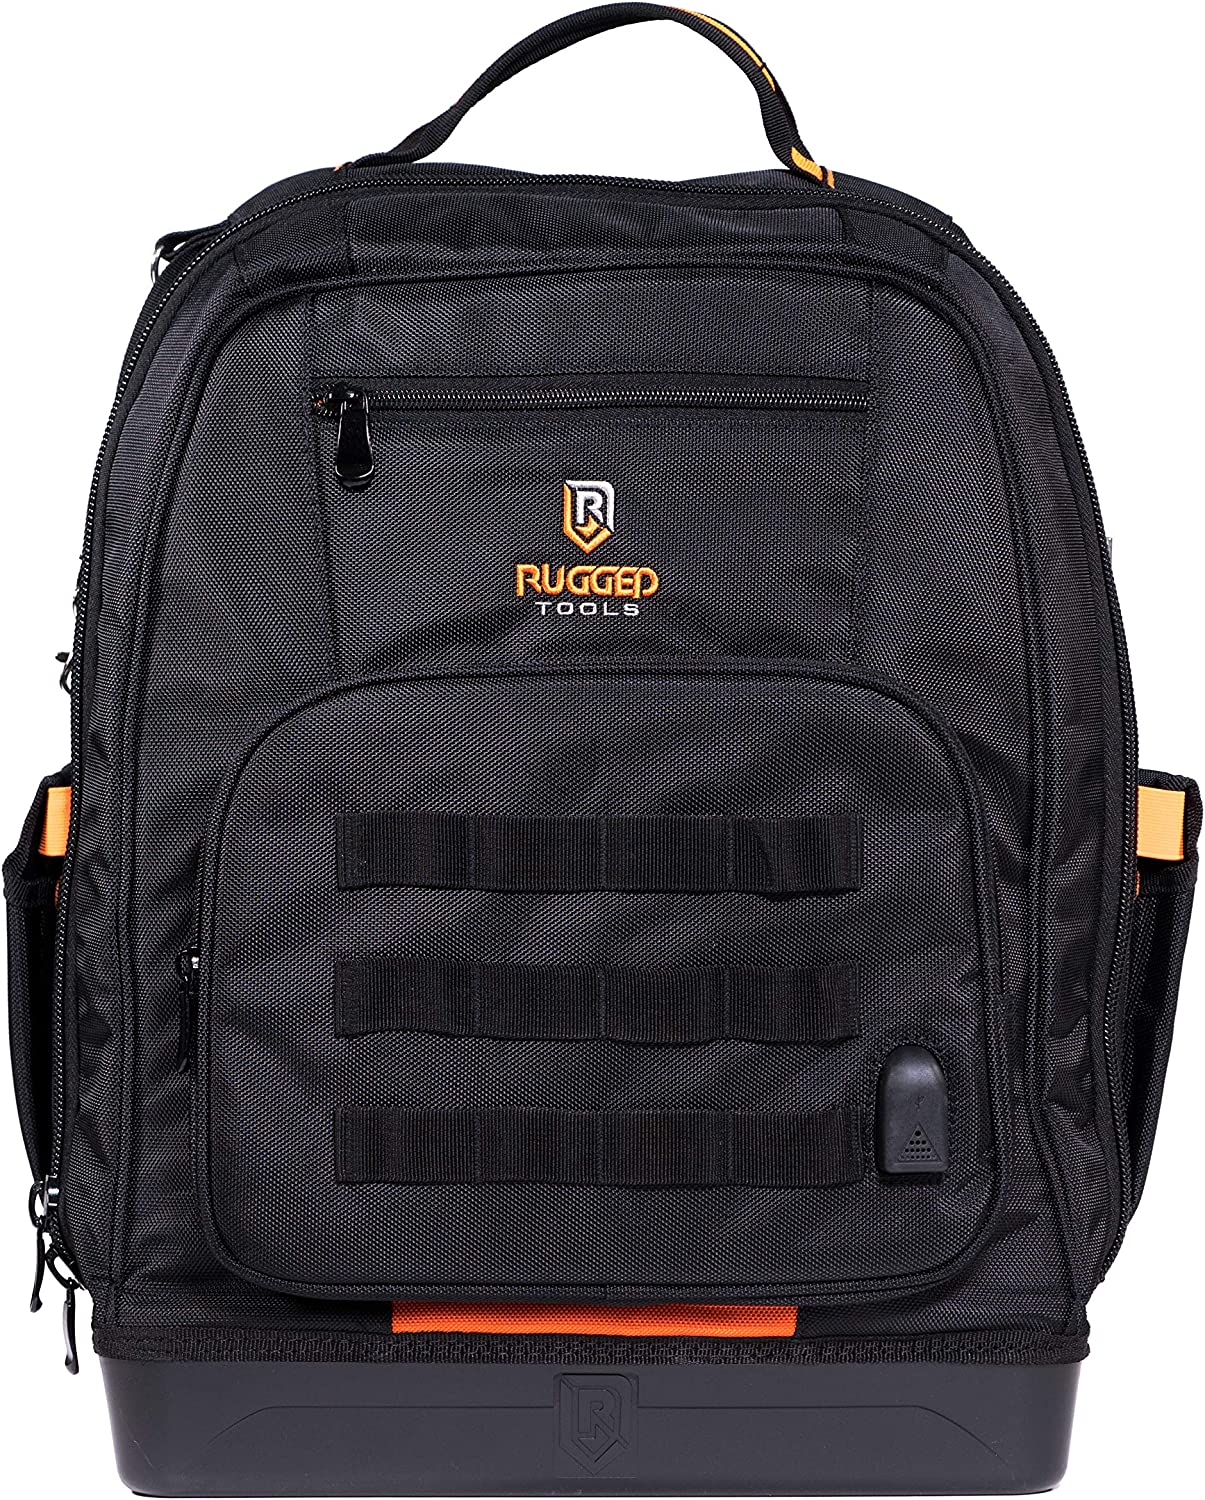 Rugged Tools Worksite Tool Backpack - 68 Pockets & Utility Organizers Including Laptop Sleeve